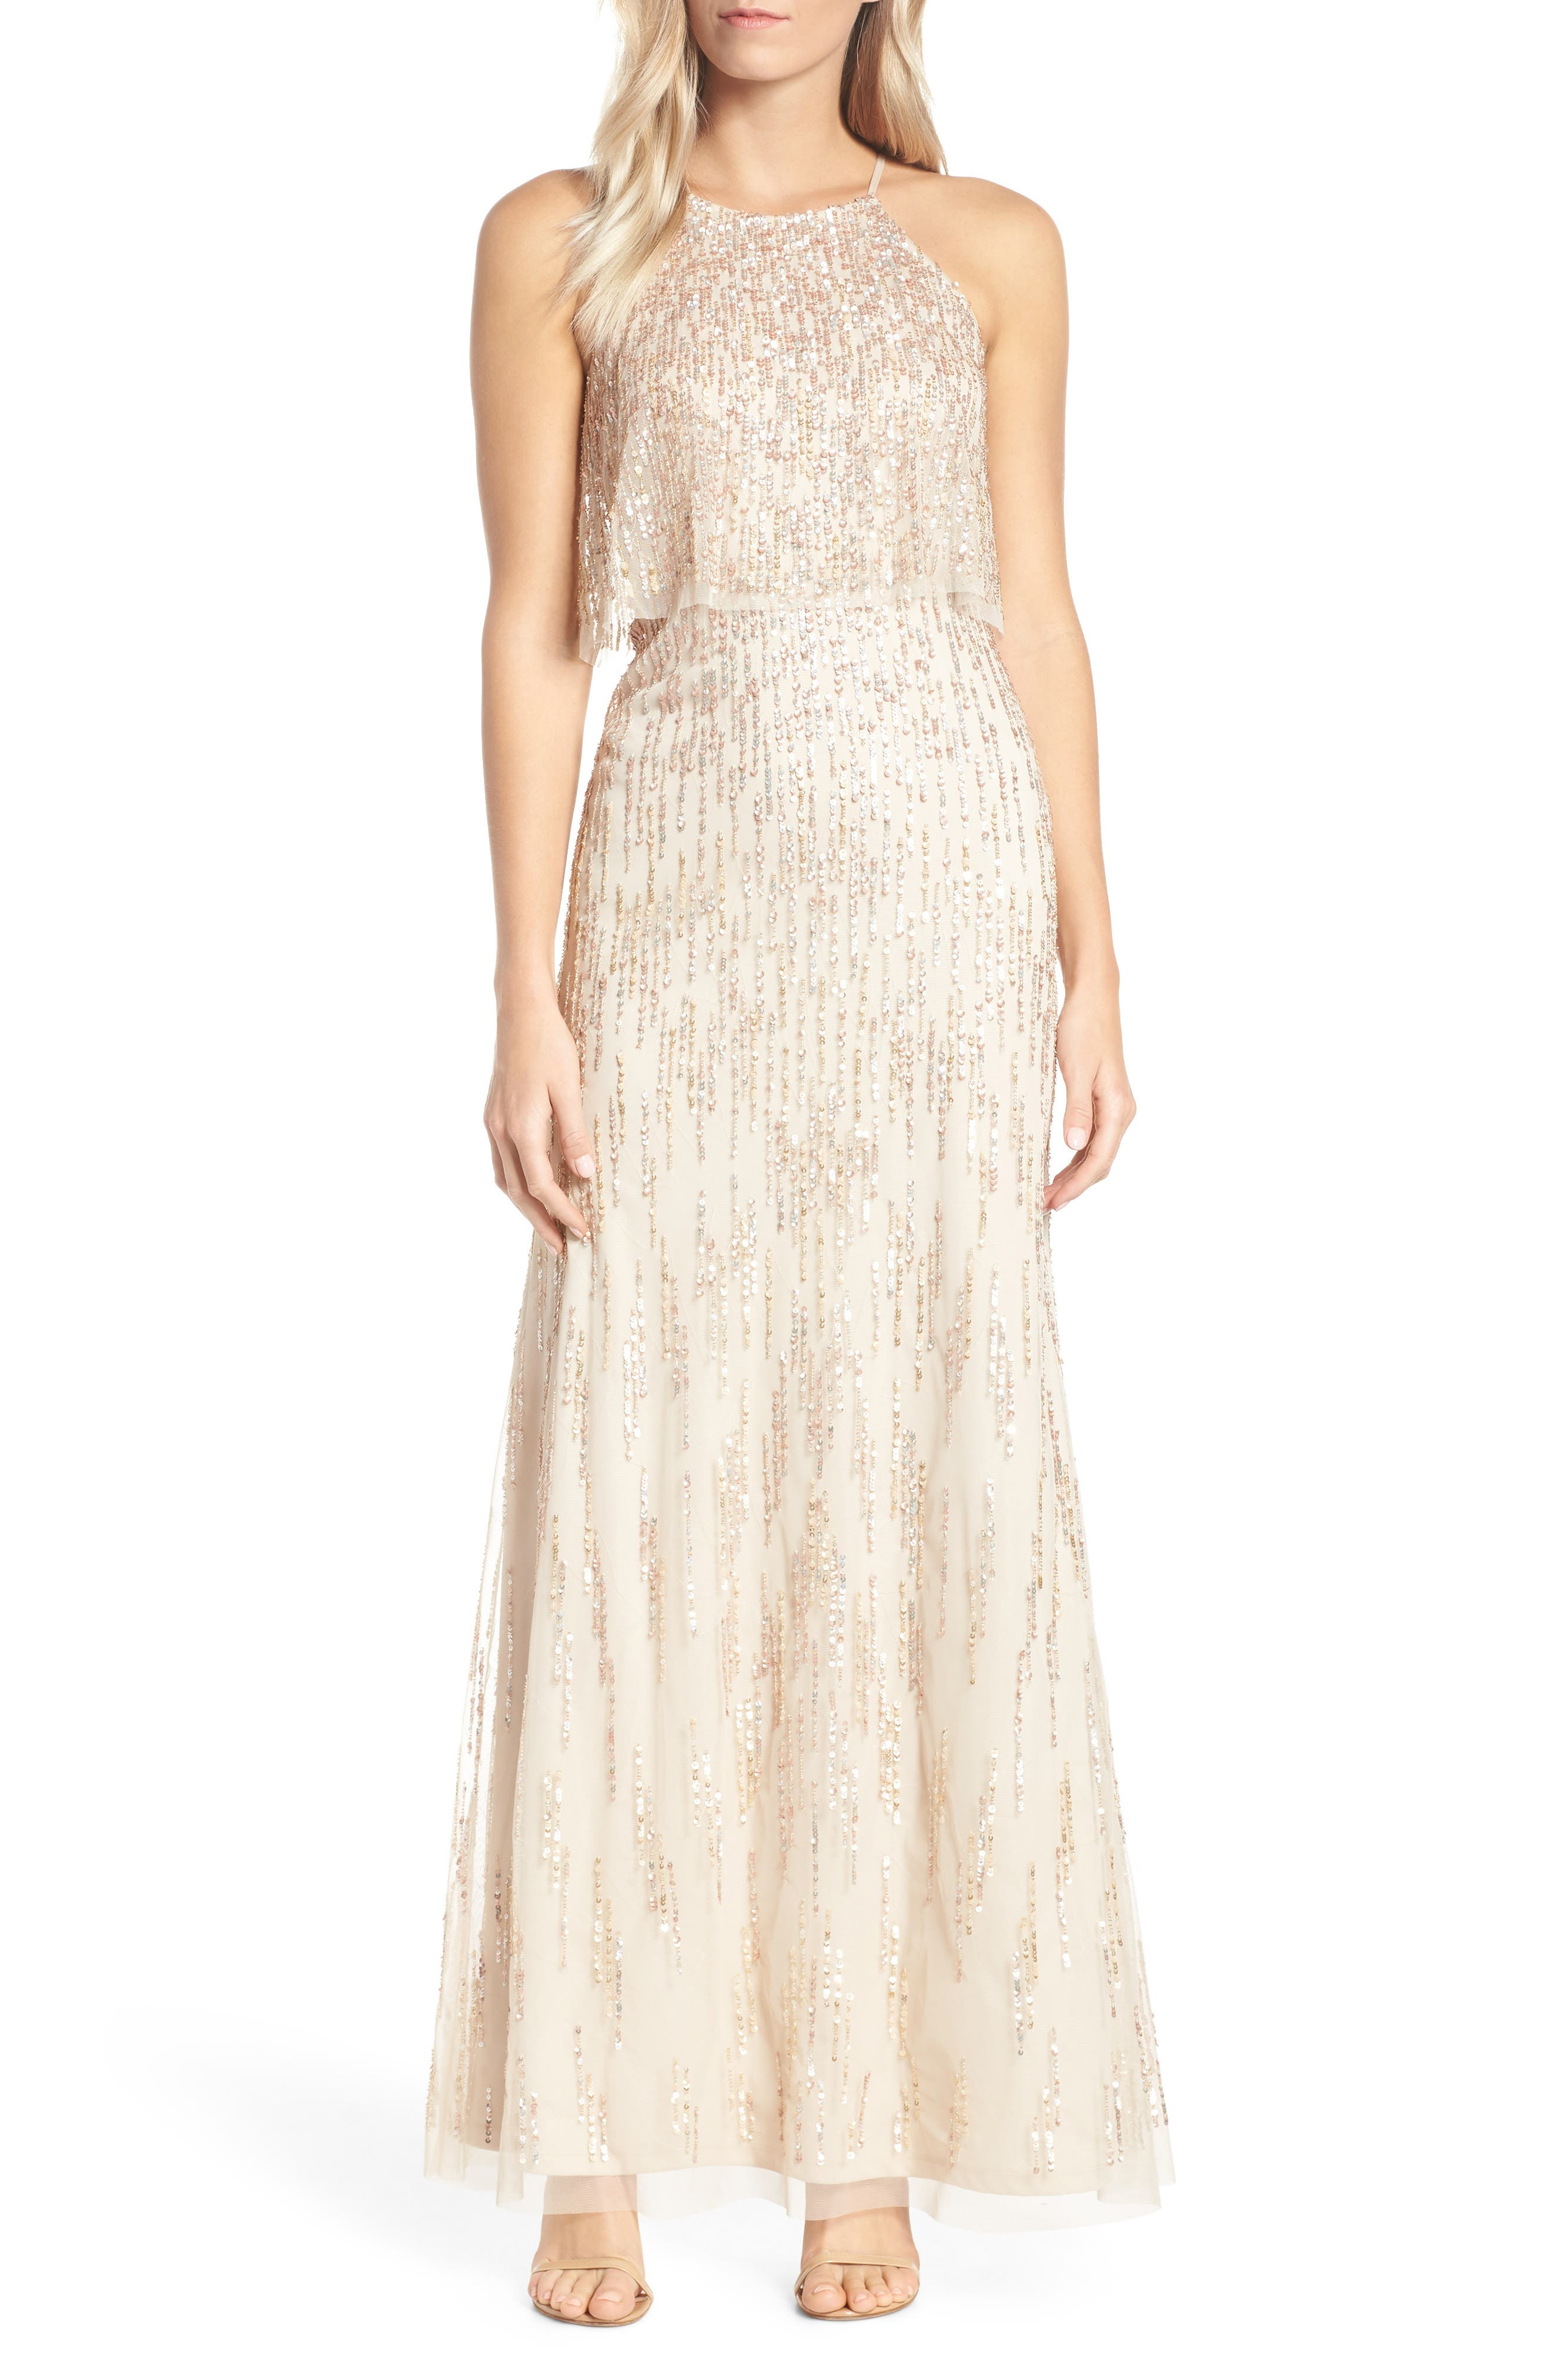 Adrianna Papell Beaded Evening Dress, Ivory